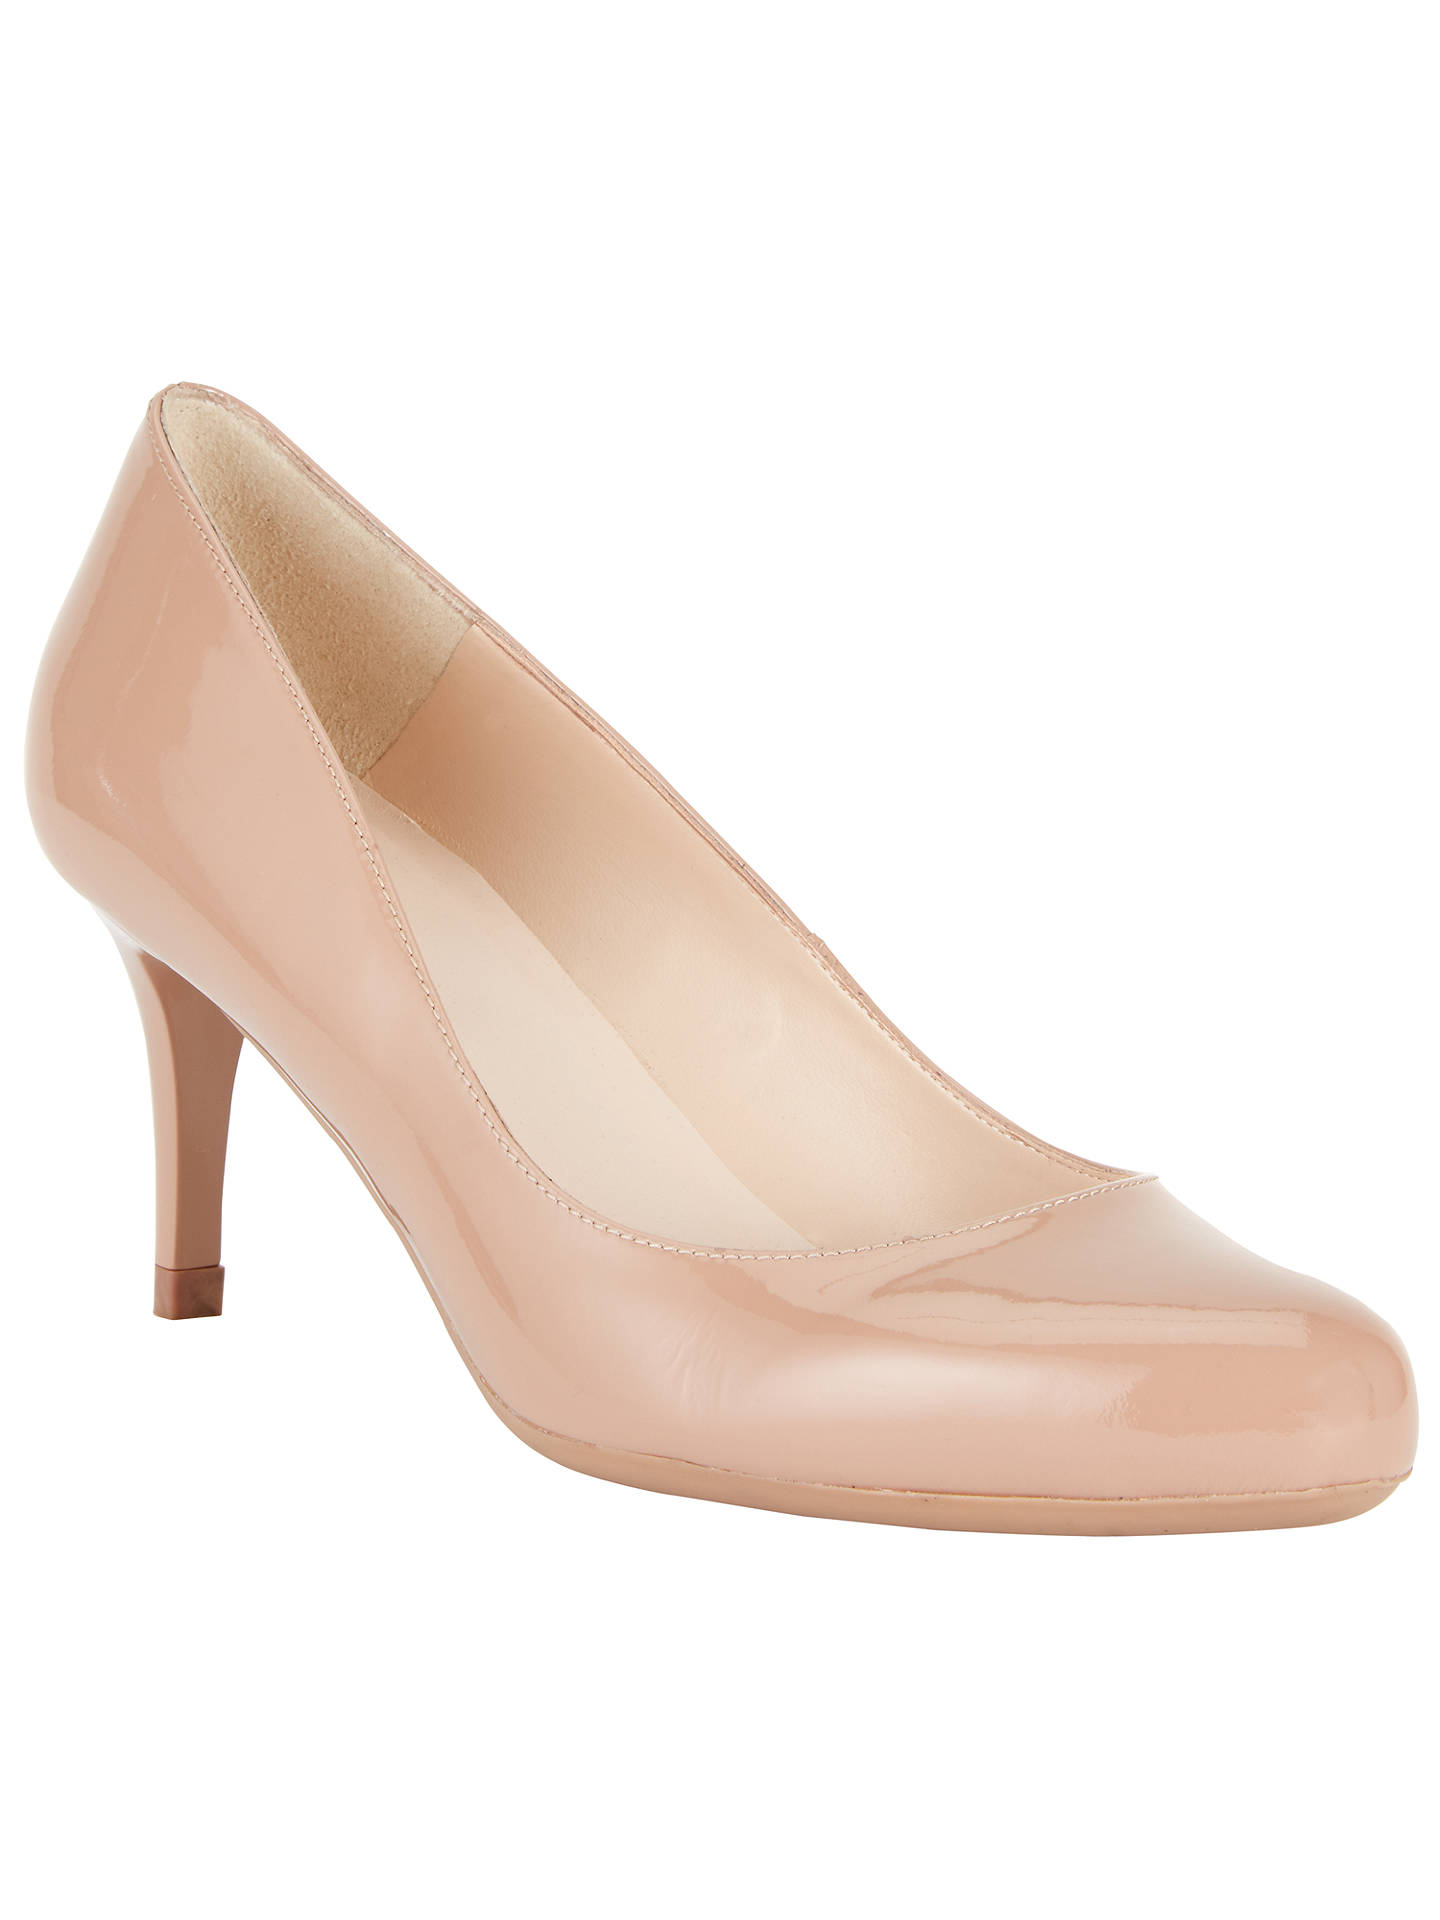 Buy John Lewis A-Etta Stiletto Heeled Court Shoes, Nude Patent, 3 Online at johnlewis.com